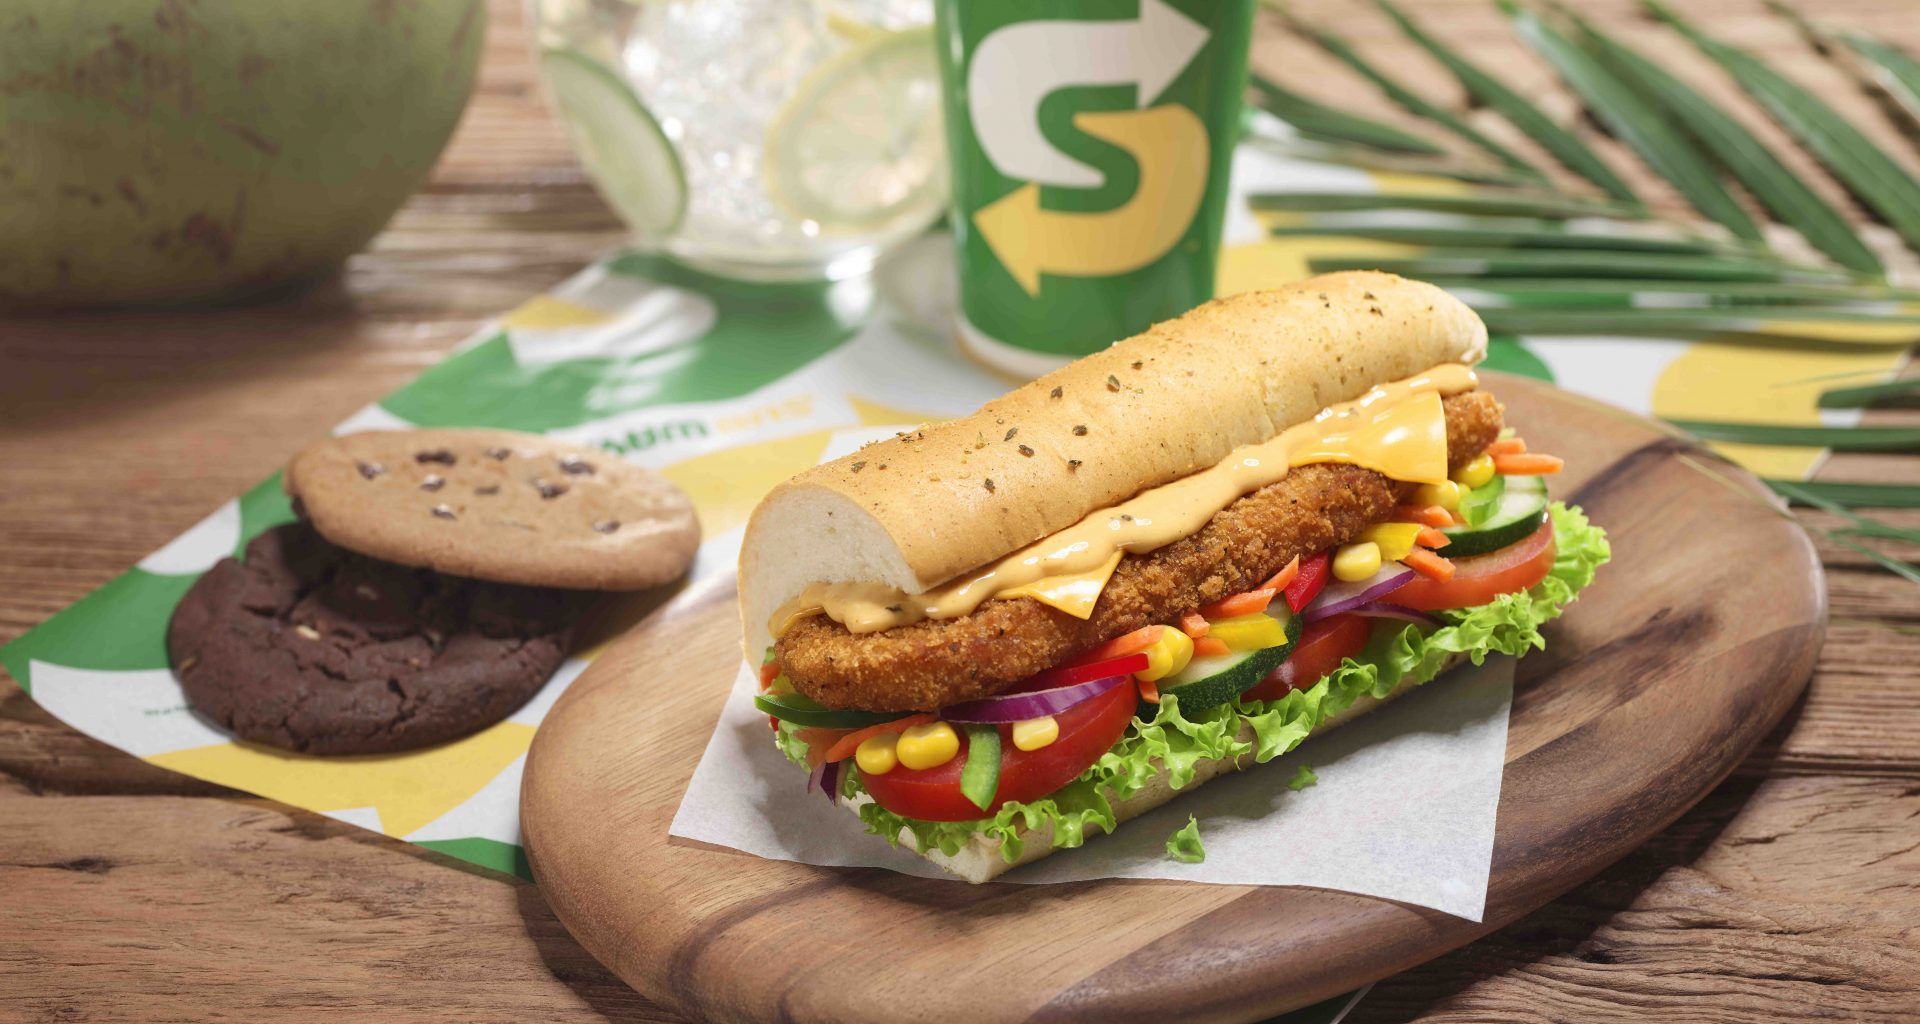 [NEW] Subway Seafood Patty Sub - three-in-one combo made with squid, fish, and shrimp; Tiktok challenge lets you win $100 GrabFood vouchers! - Alvinology